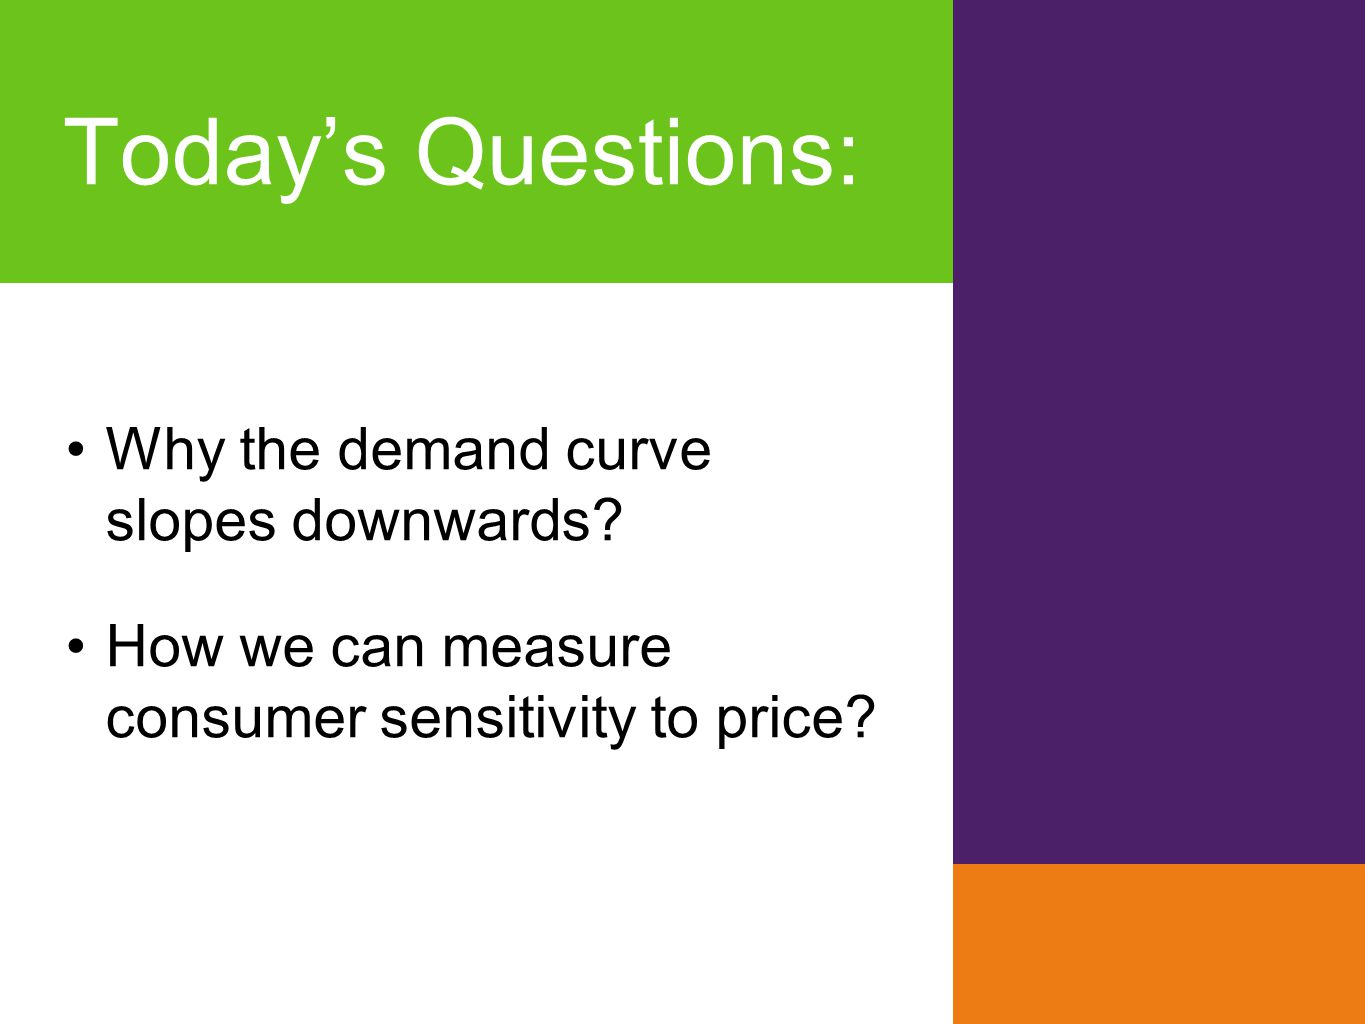 Today's Questions: Why the demand curve slopes downwards